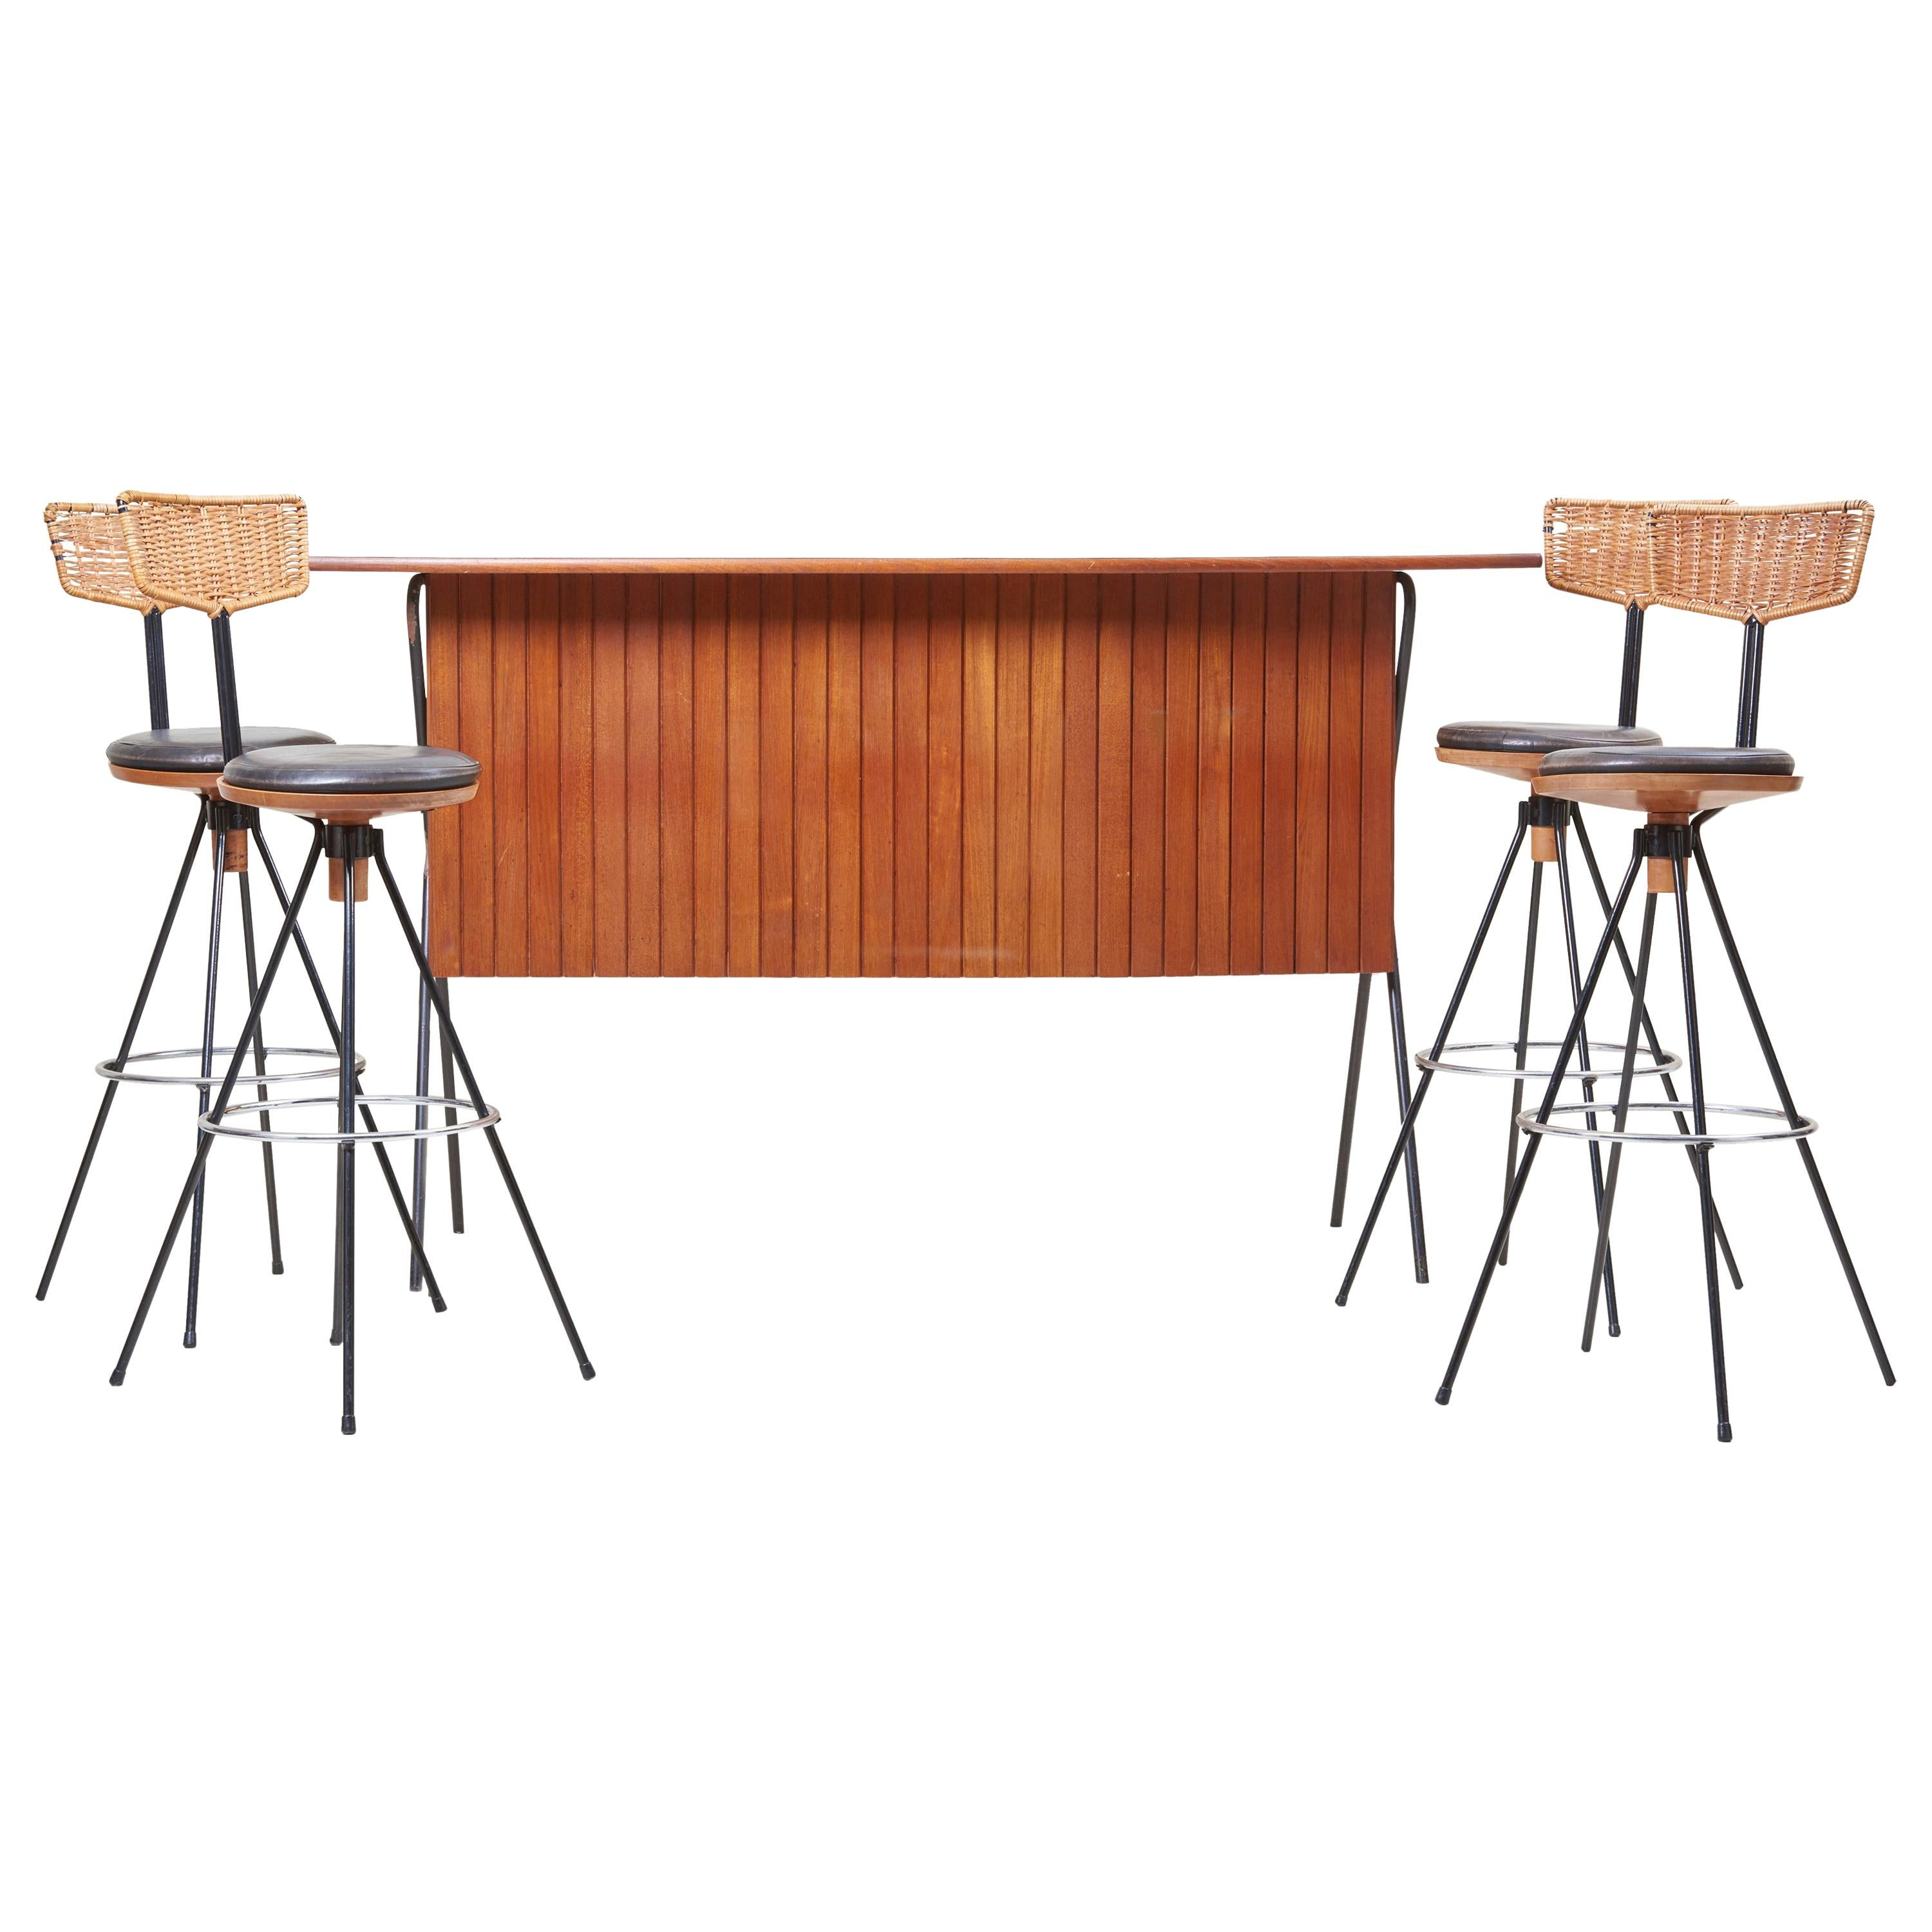 House Bar and Four Bar Stools by Prof. Herta-Maria Witzemann for Erwin Behr